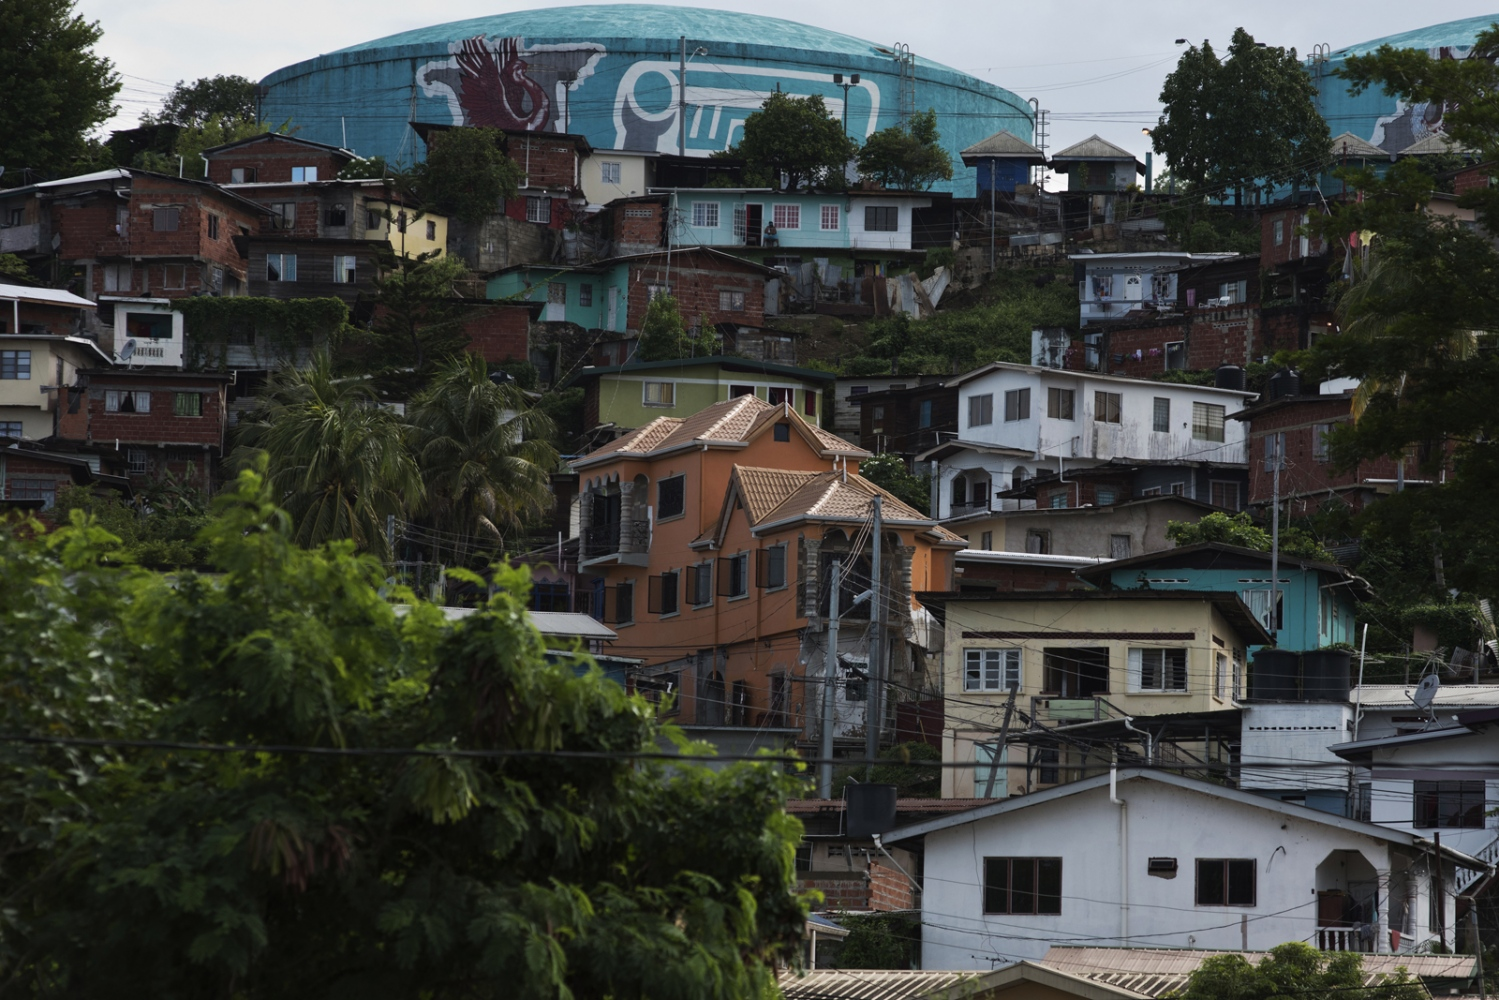 General view in Port-of-Spain the capital city of the Republic of Trinidad and Tobago. As economy crumbles in Venezuela , desperate people travel 10 hours to buy food, supplies across the water in Trinidad, and some Venezuelans arenew immigrants informal workers in Trinidad.